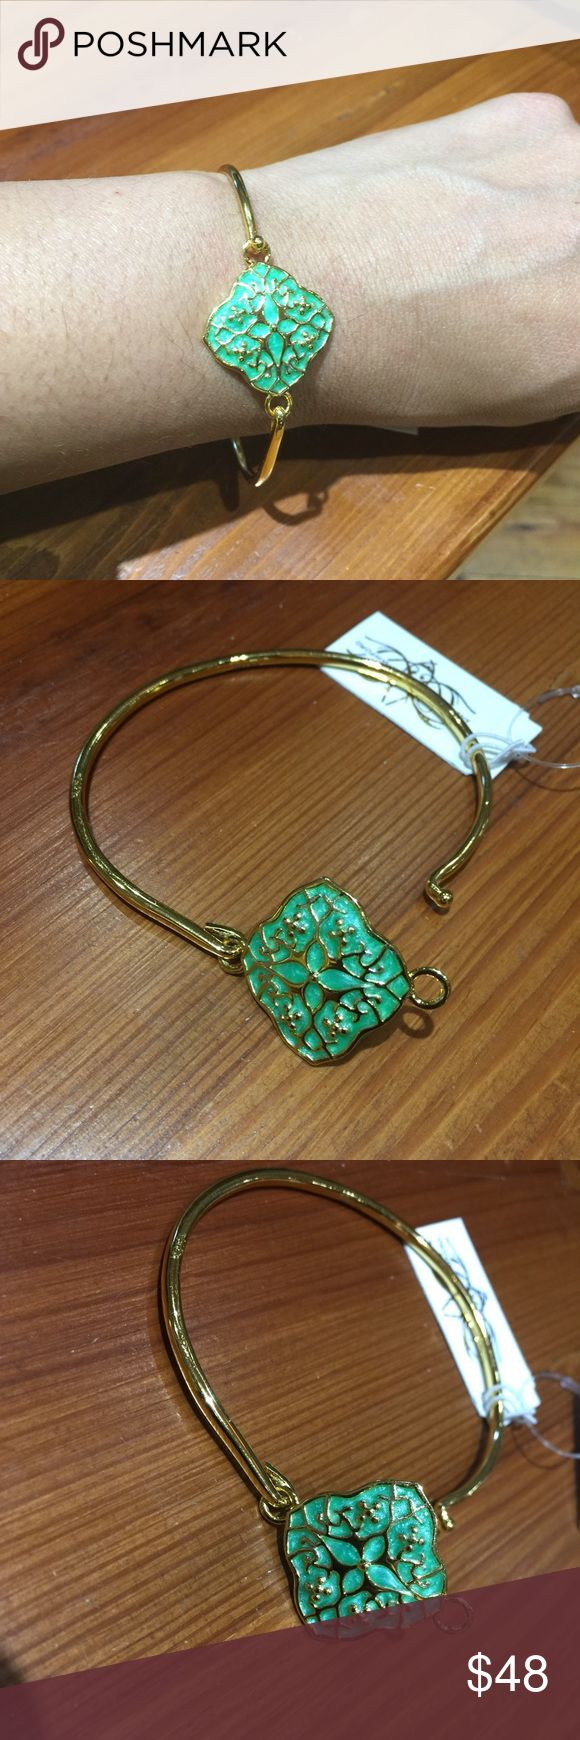 Anthony Hamilton Crawford Bracelet This amazing AHC Woodland High Wire Gold Bracelet is dainty and elegant. Features mints green and gold detail. Anthony Hamilton Crawford  Jewelry Bracelets